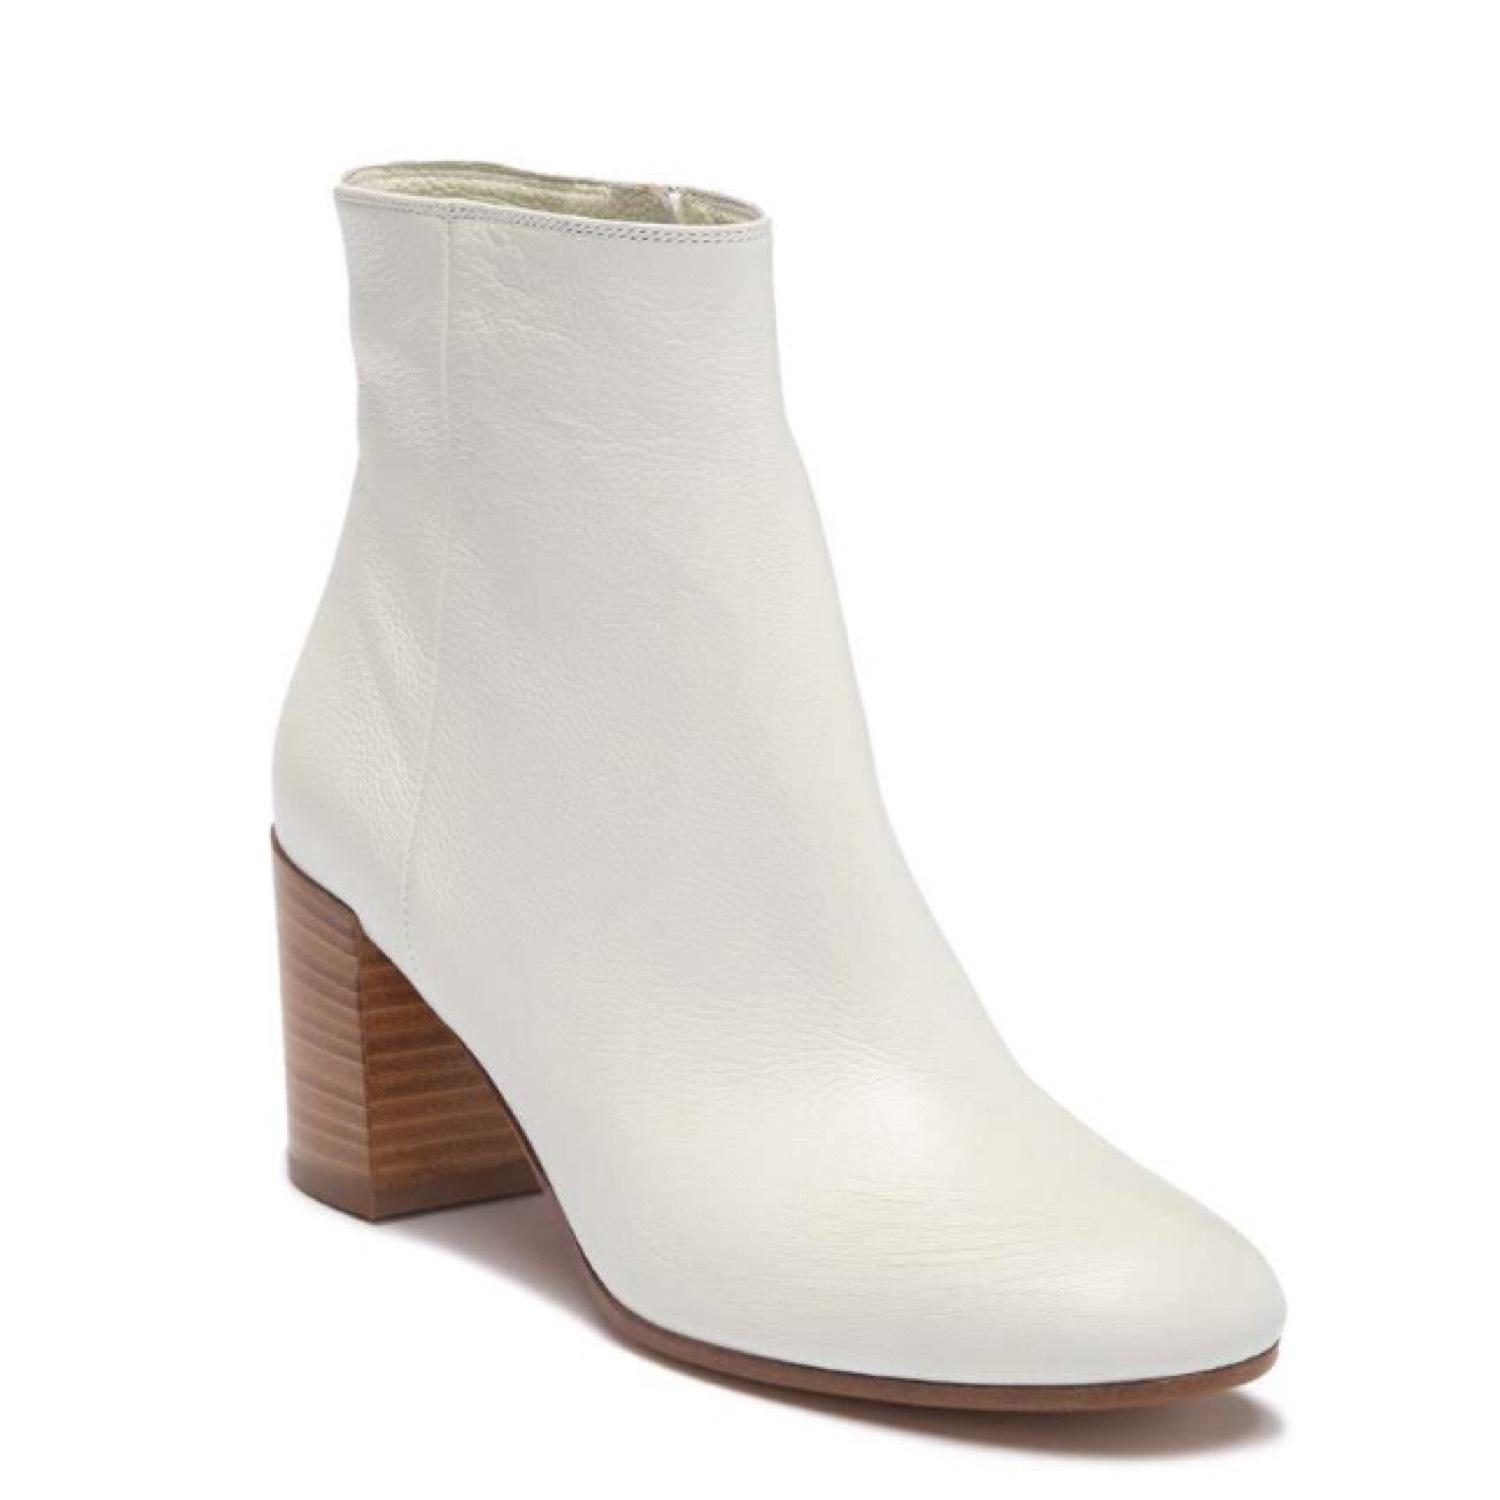 Vince White Leather Boots/Booties Size US 7 Regular (M, B)